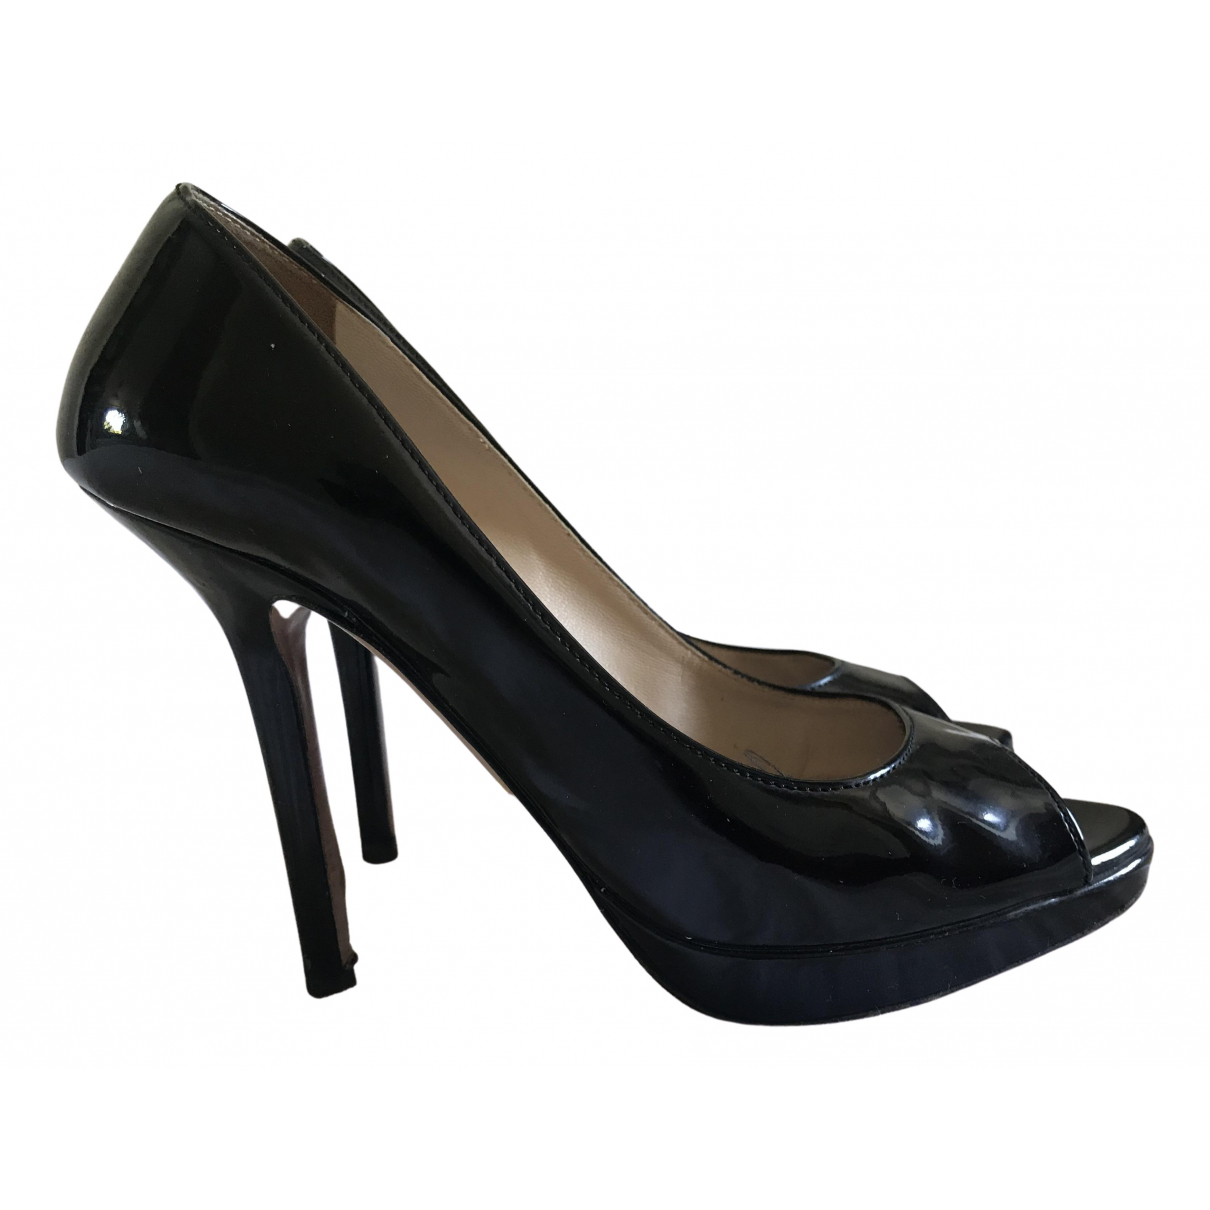 Prada \N Black Patent leather Heels for Women 37 IT